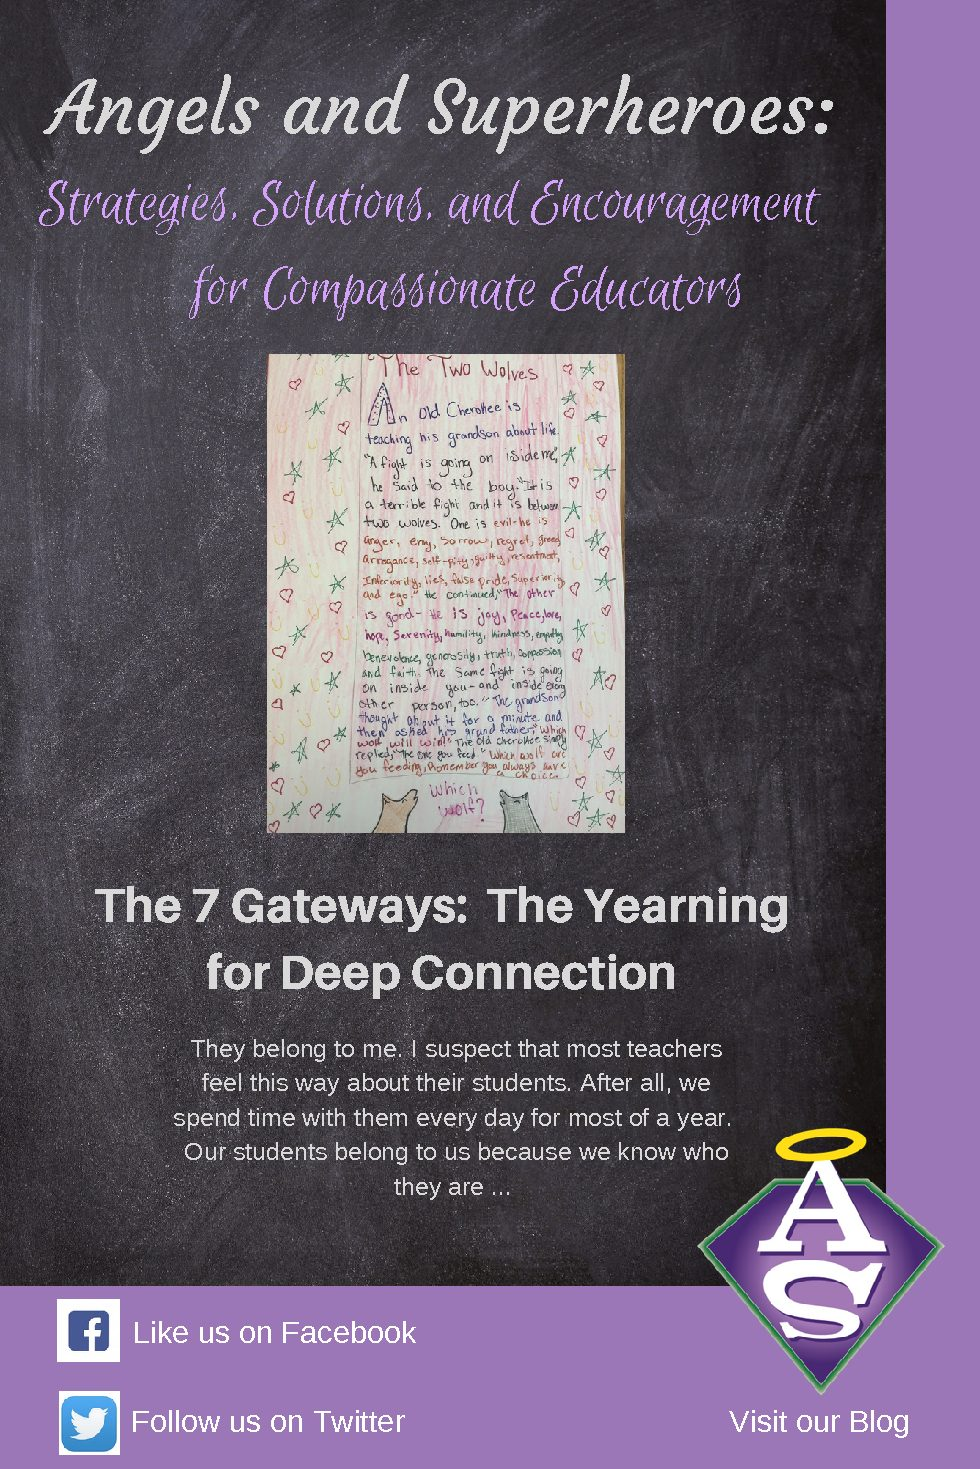 The 7 Gateways: The Yearning for Deep Connection